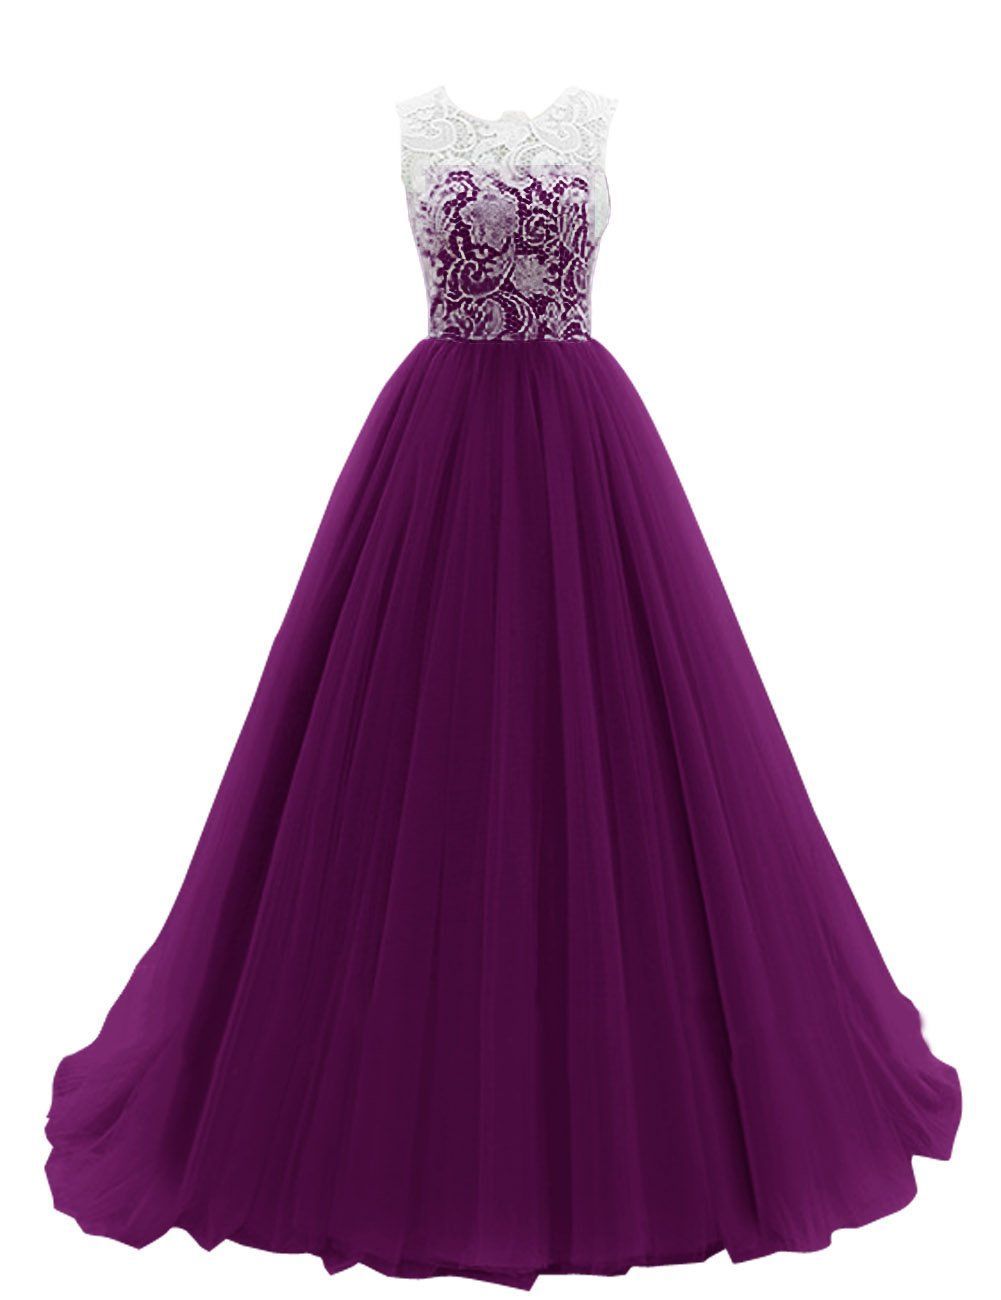 Dresstells womenus long tulle prom dress dance gown with lace grape